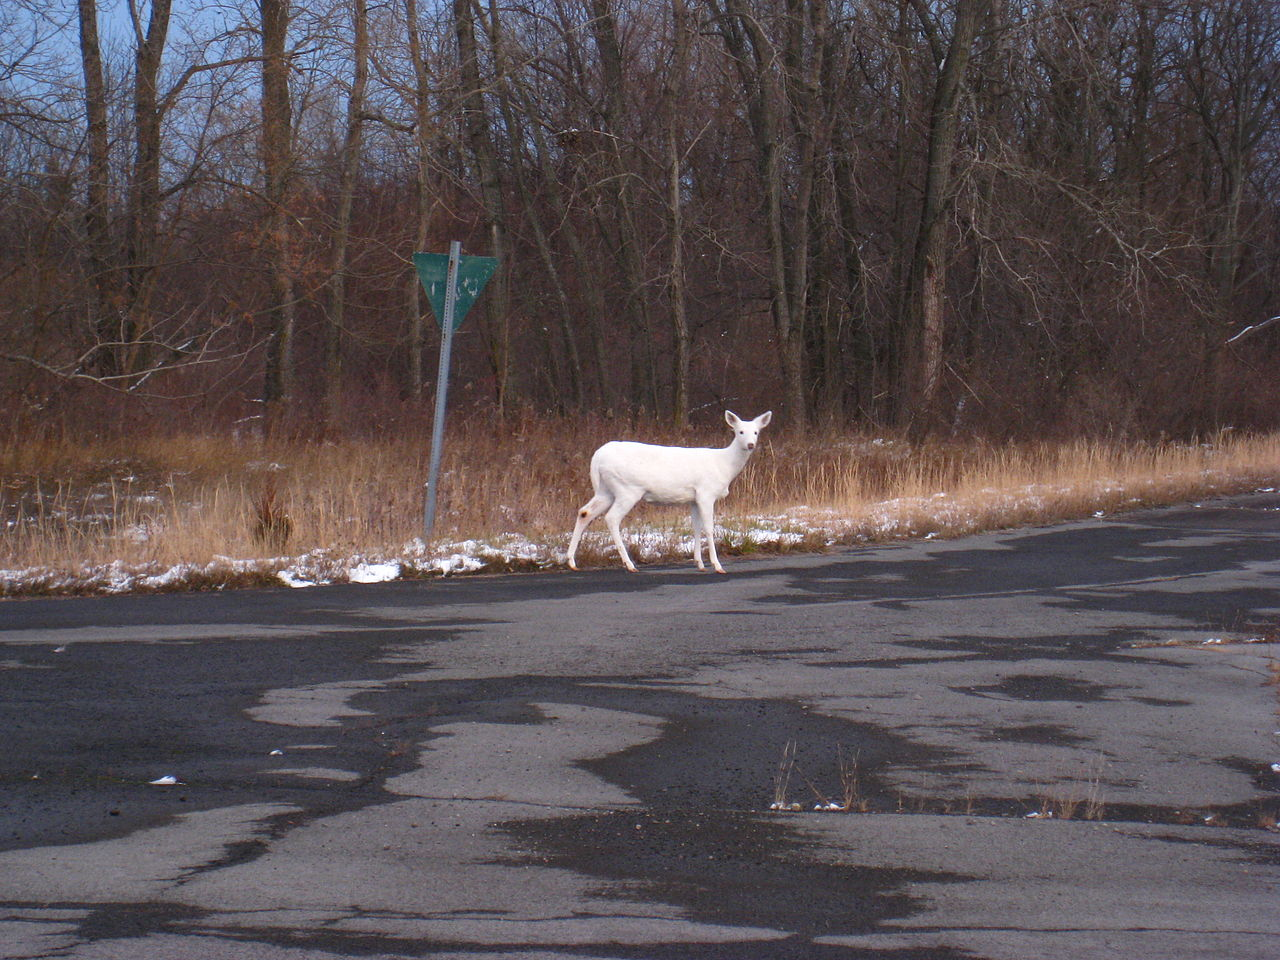 Seneca White Deer Offers Tours At Former Seneca Army Depot